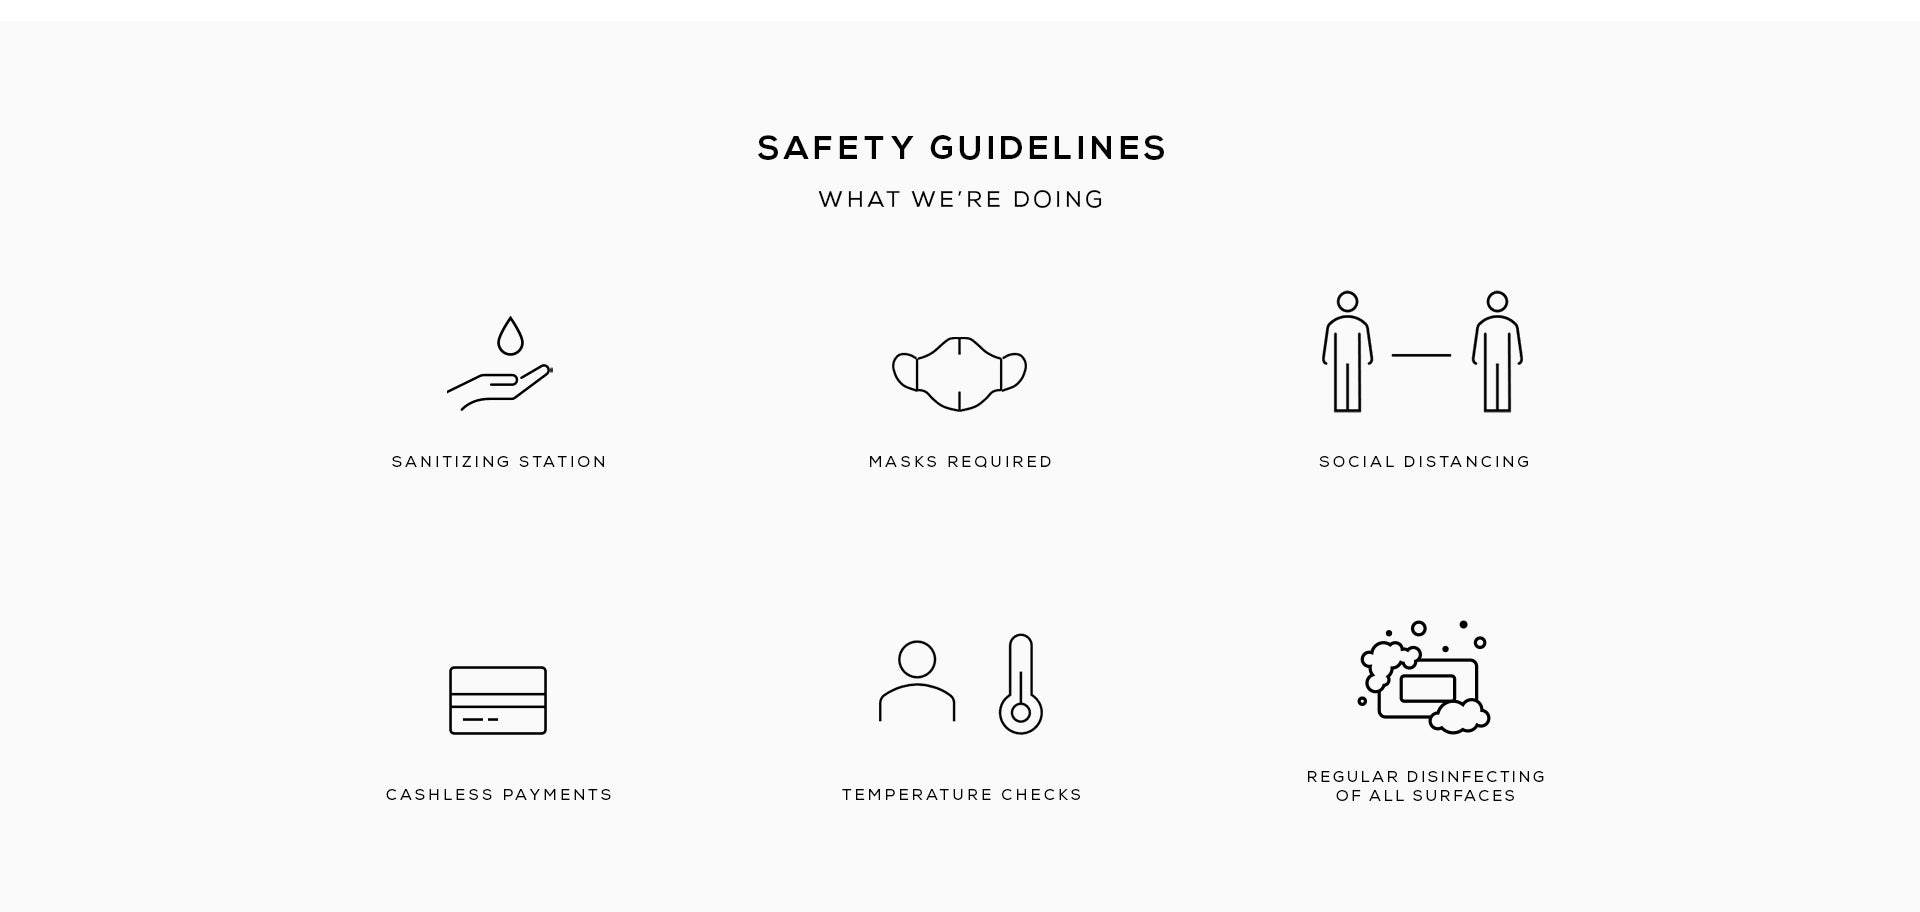 covid safety guidelines for store, sanitizing station, masks required, social distancing, cashless payments, temperature checks, regular disinfecting of all surfaces